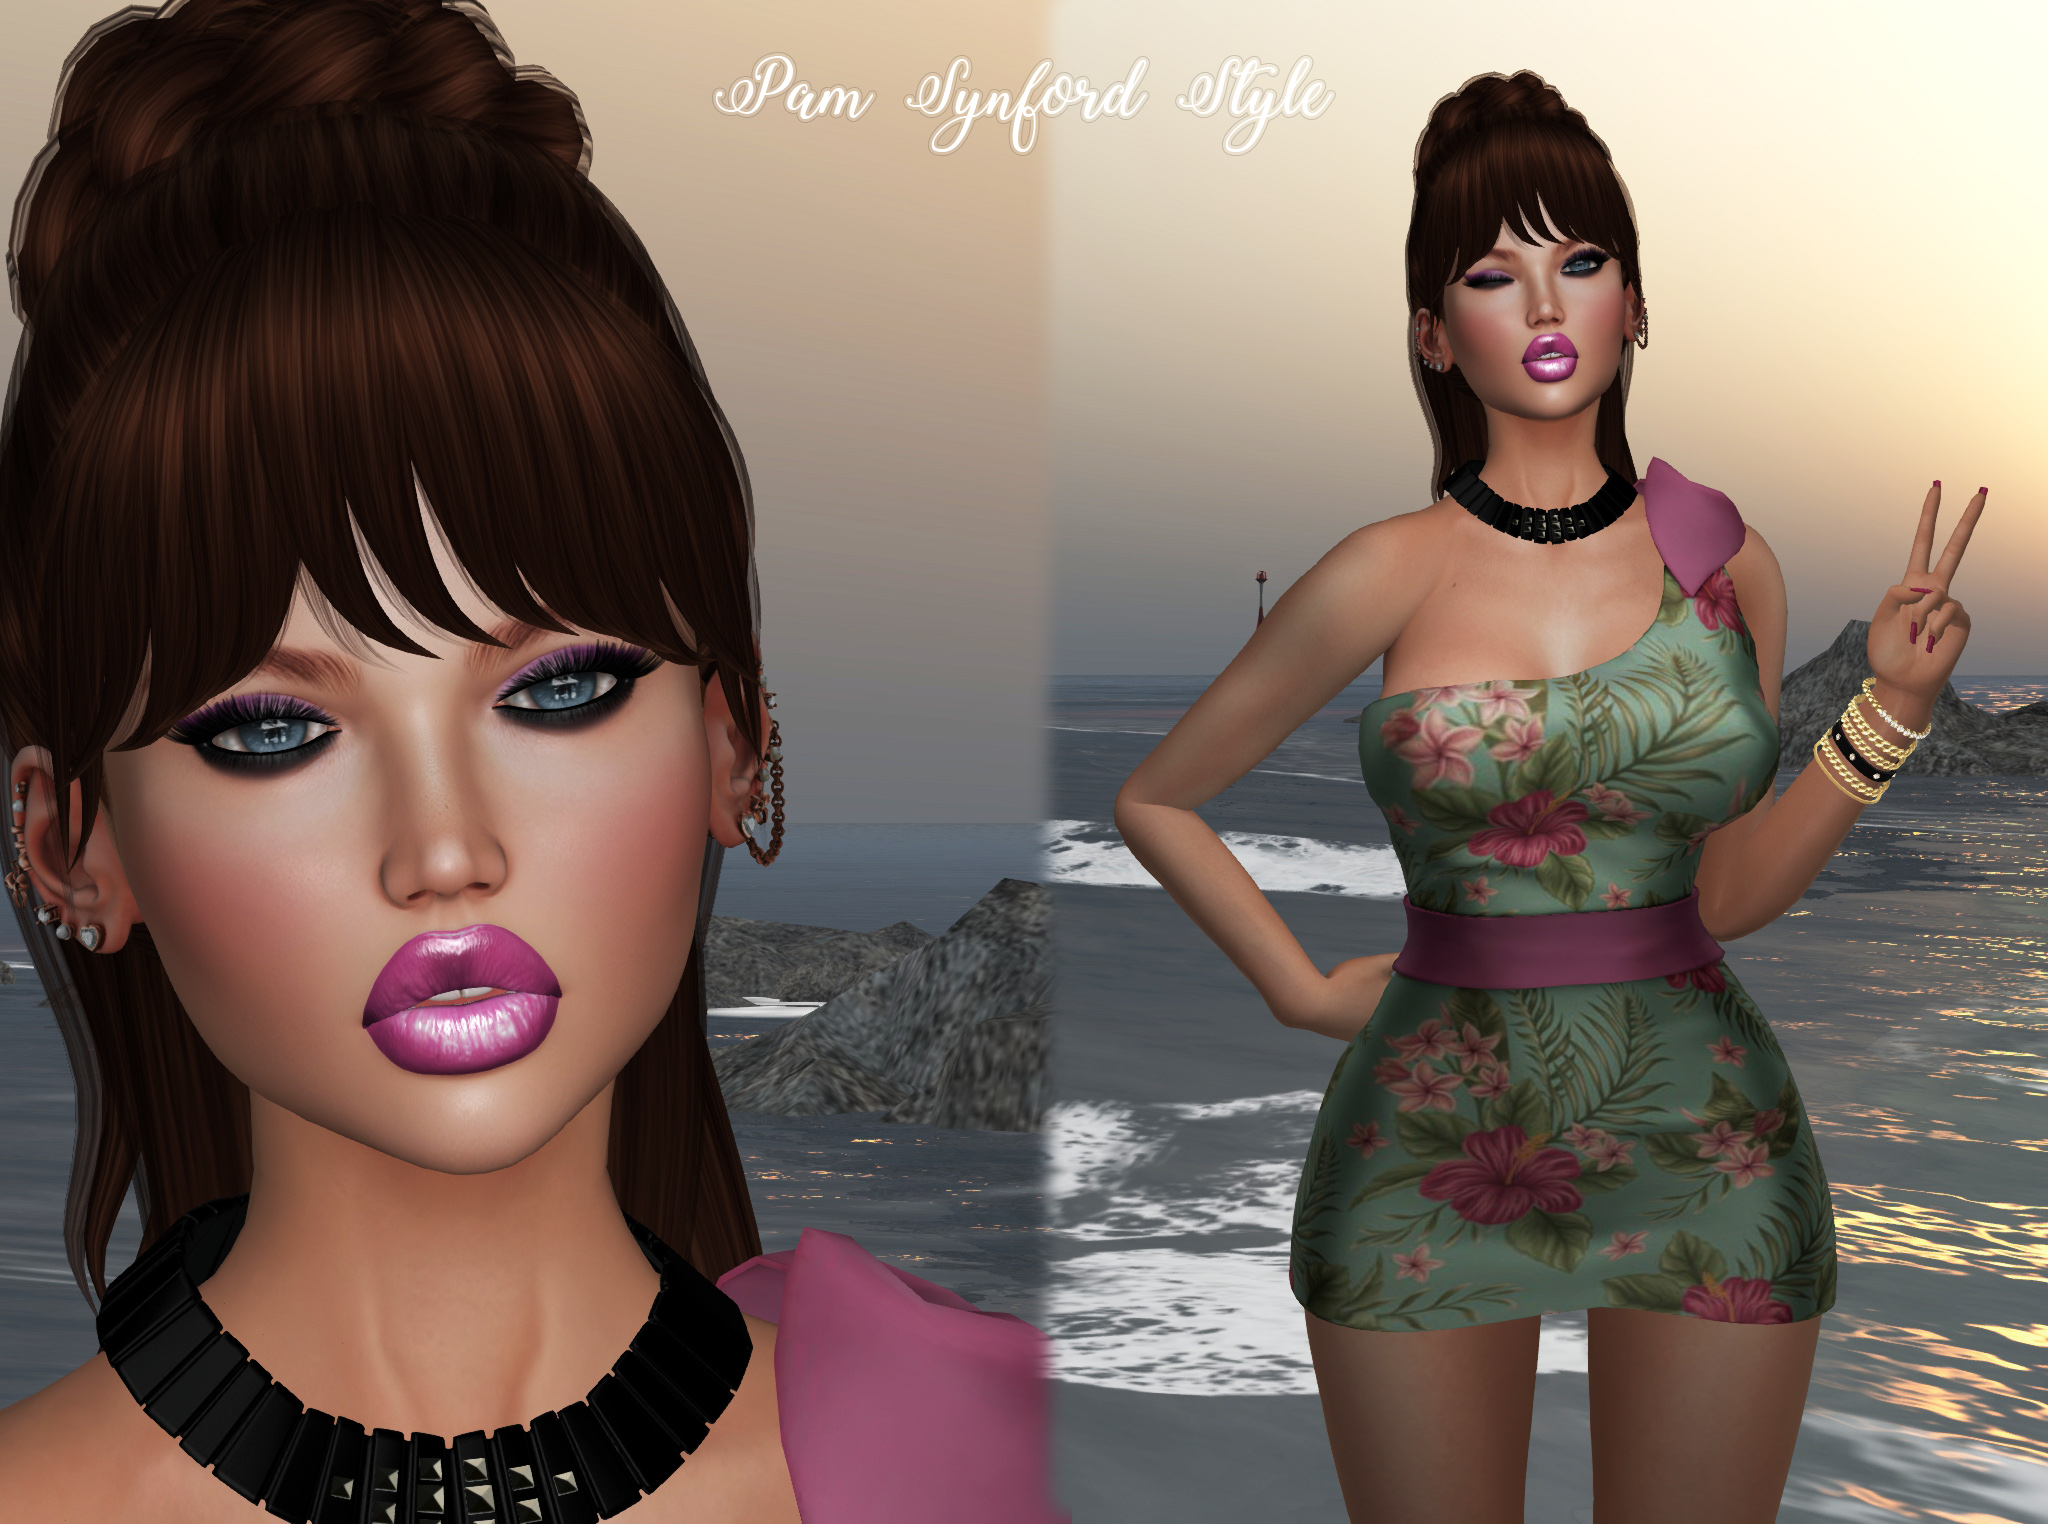 Kendrasy * Vista * Fabia Mesh Hair * White Queen * Az Designs